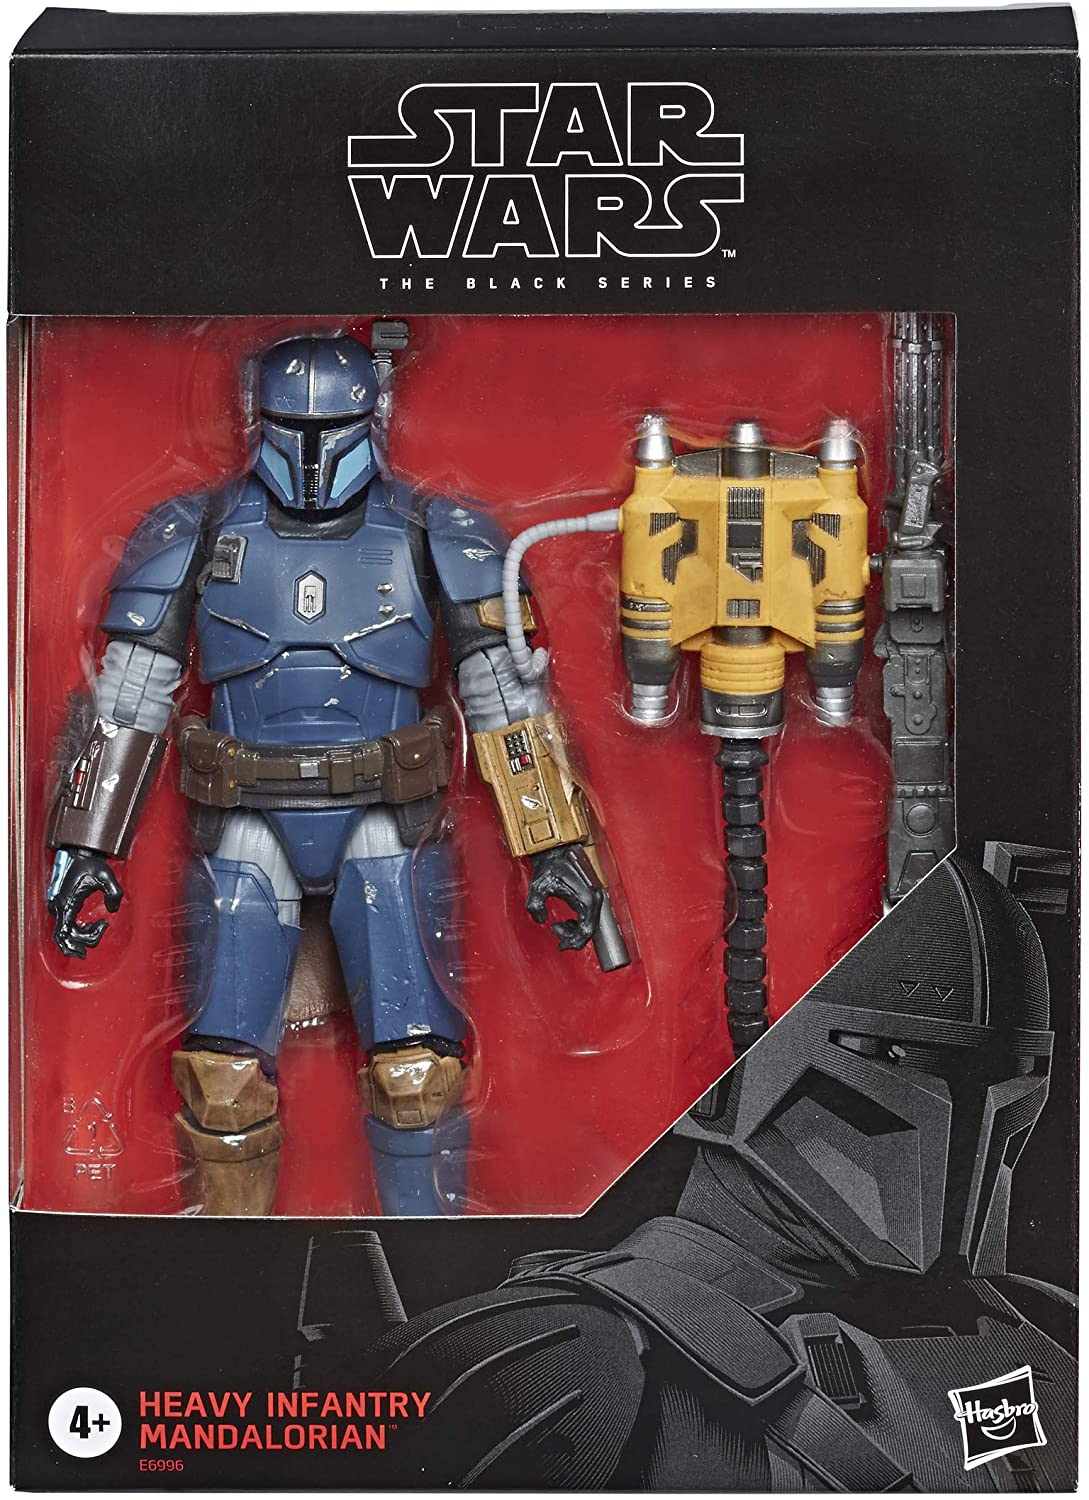 Image of Star Wars The Black Series Heavy Infantry Mandalorian Toy 6-inch Scale The Mandalorian Collectible Deluxe Action Figure, Kids Ages 4 and Up